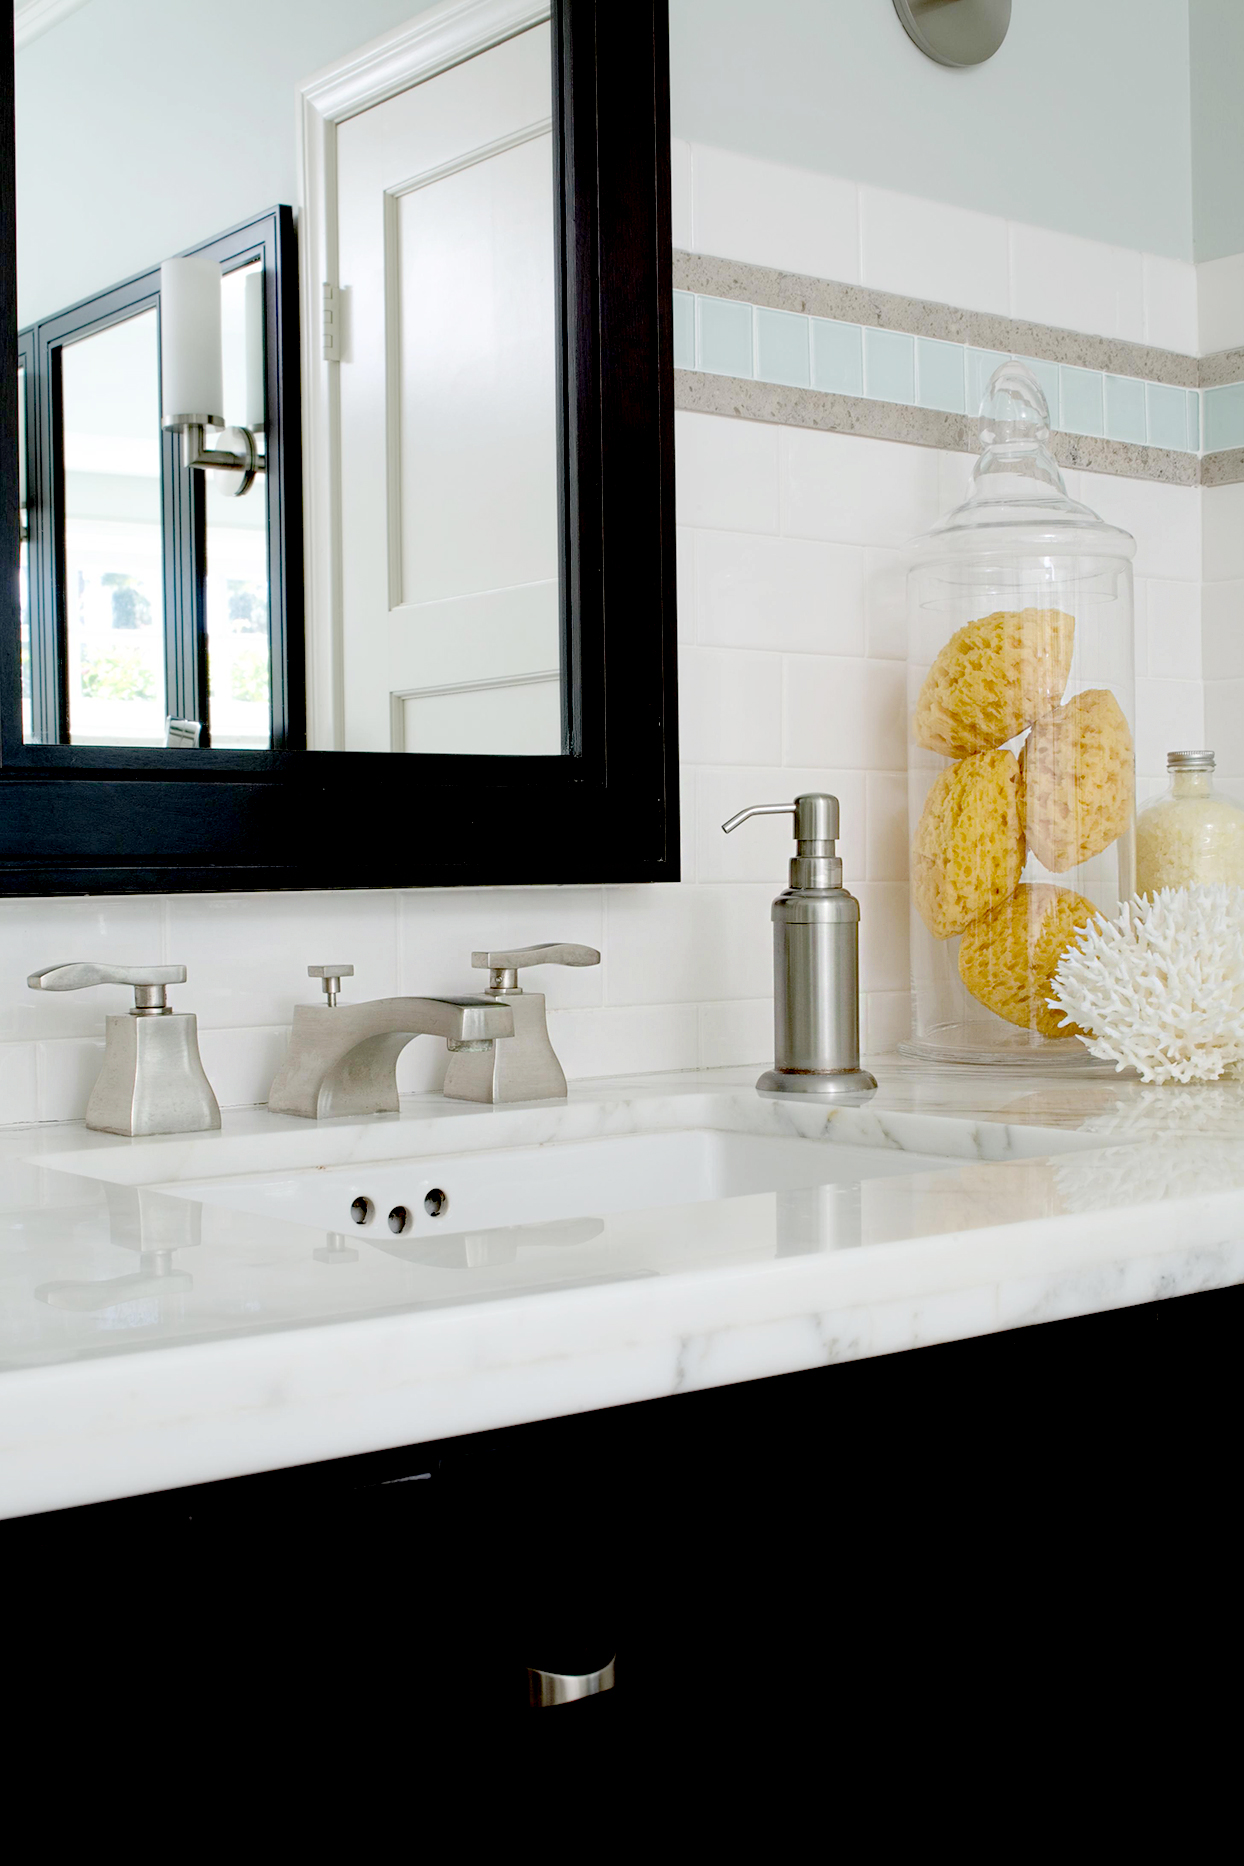 Marble bathroom sink with glass container and sponges